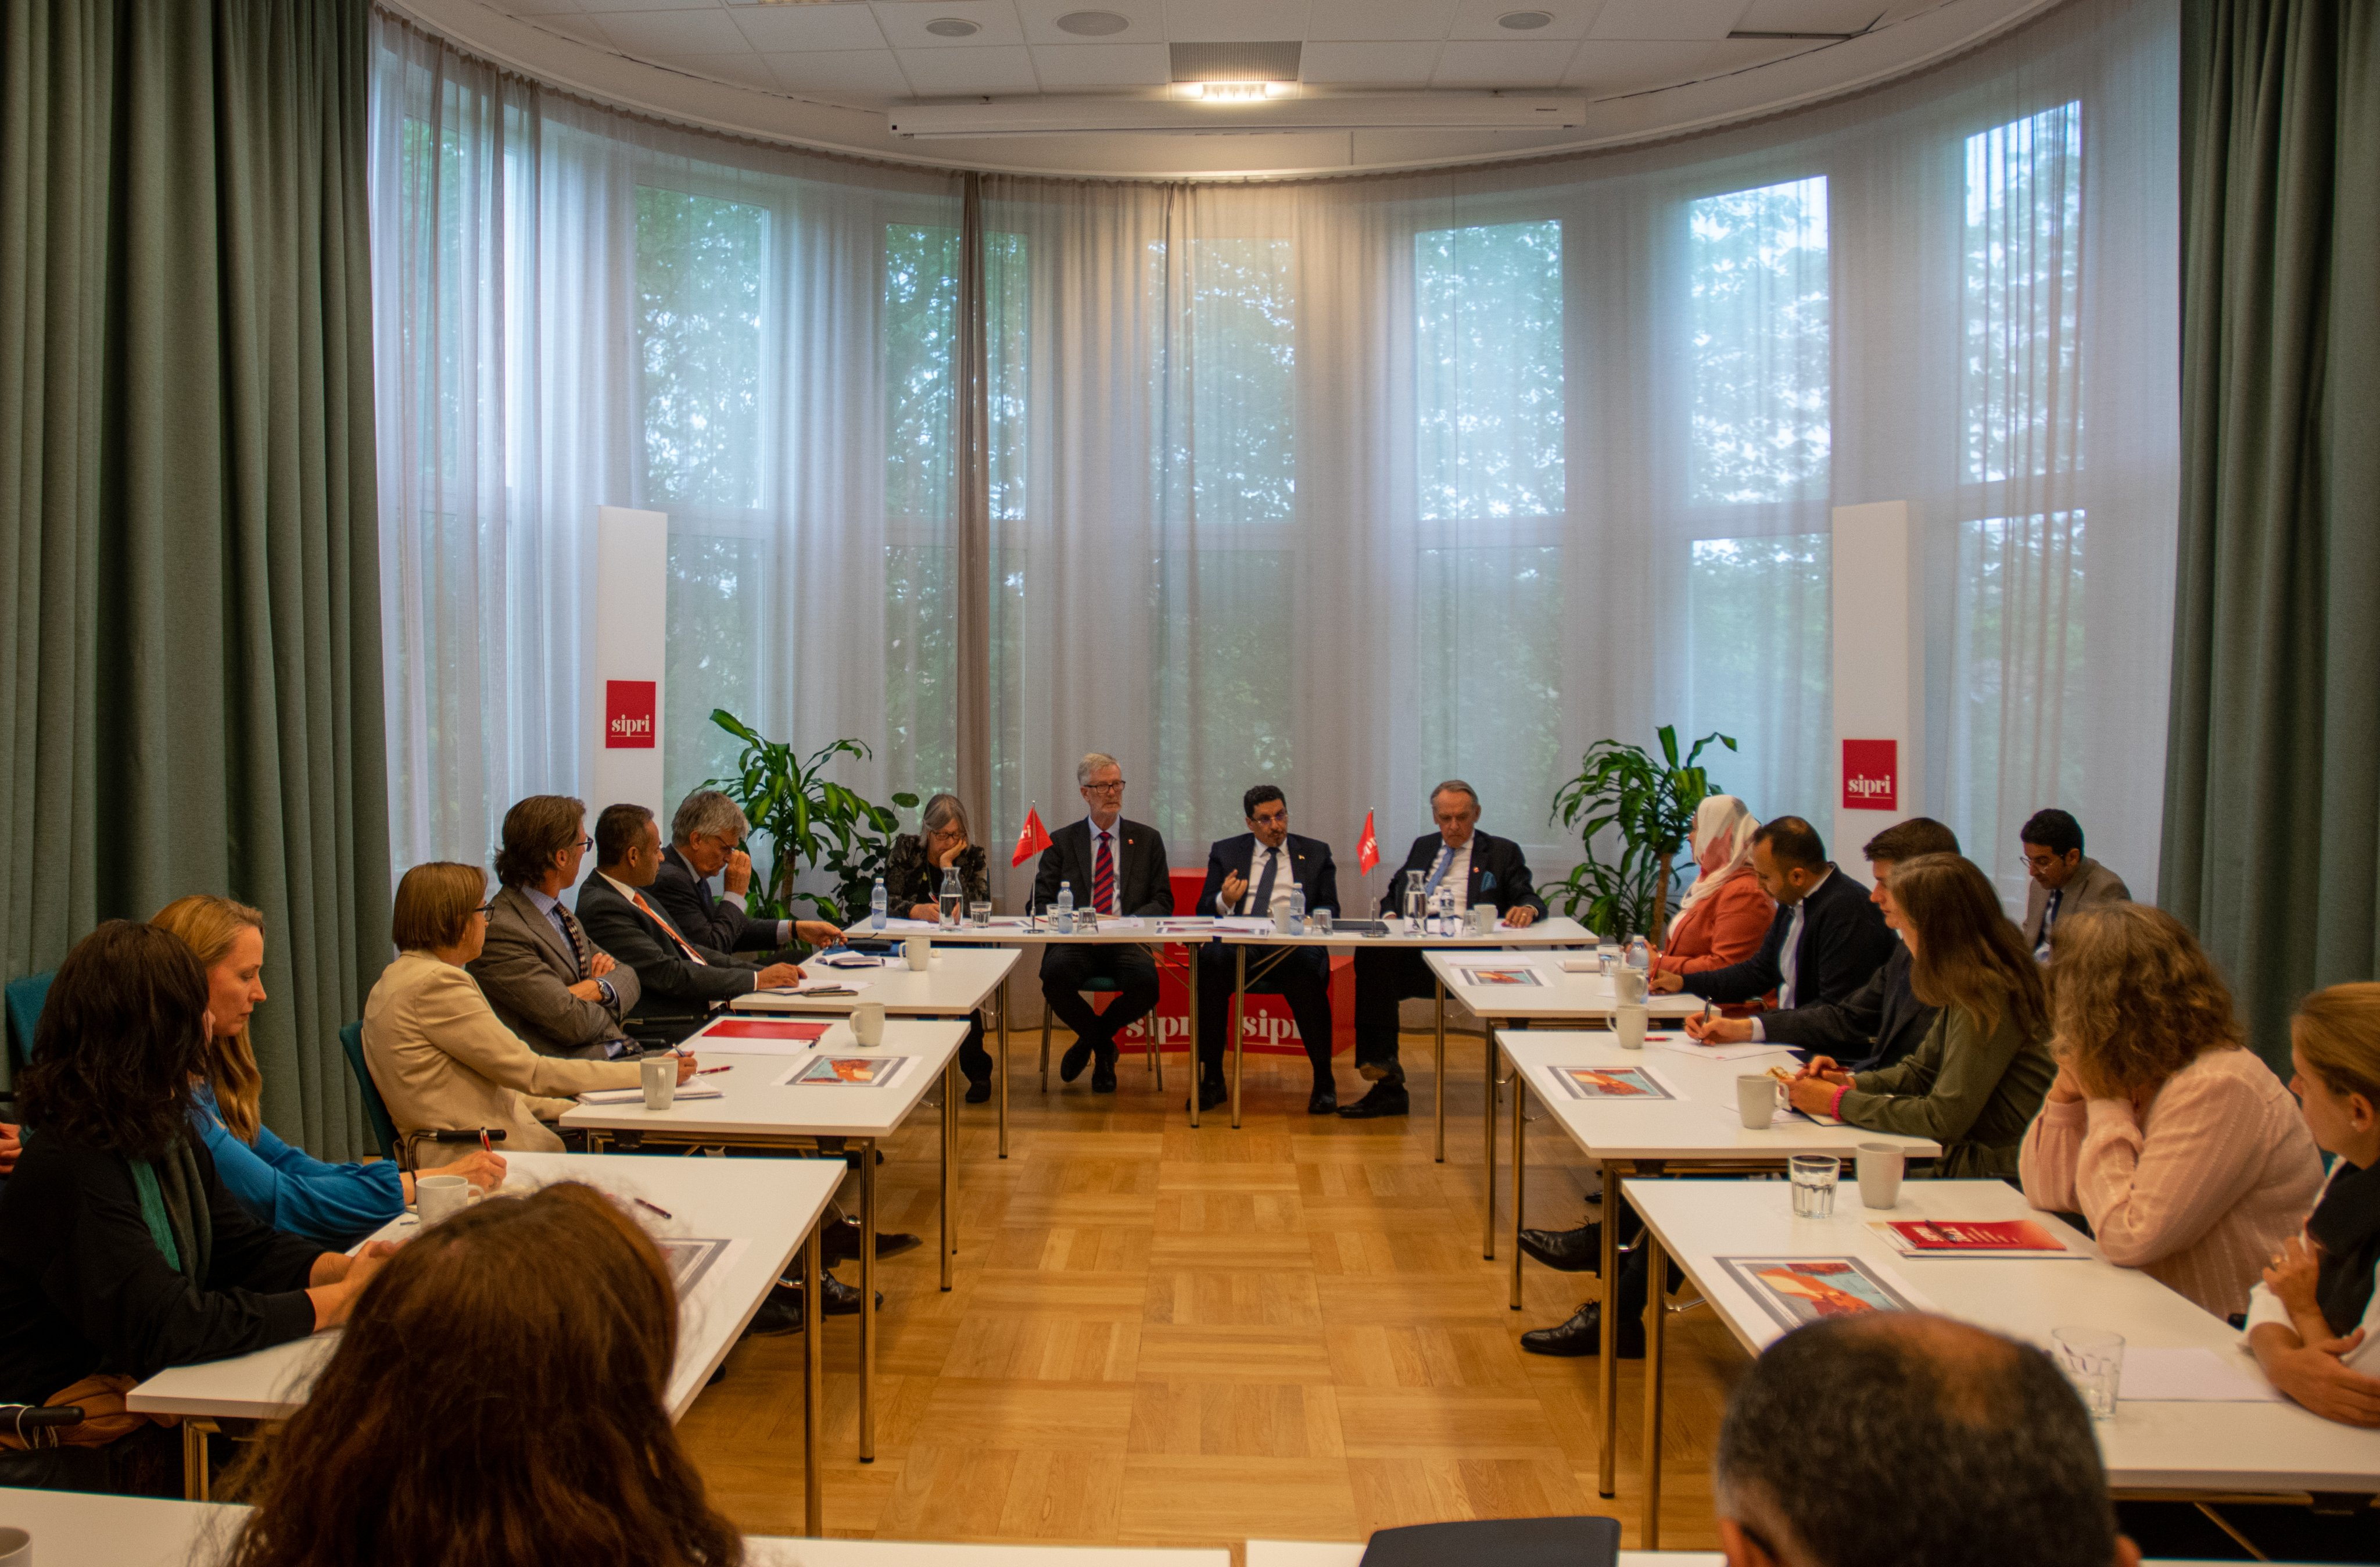 SIPRI hosted an expert roundtable discussion with Yemen FM